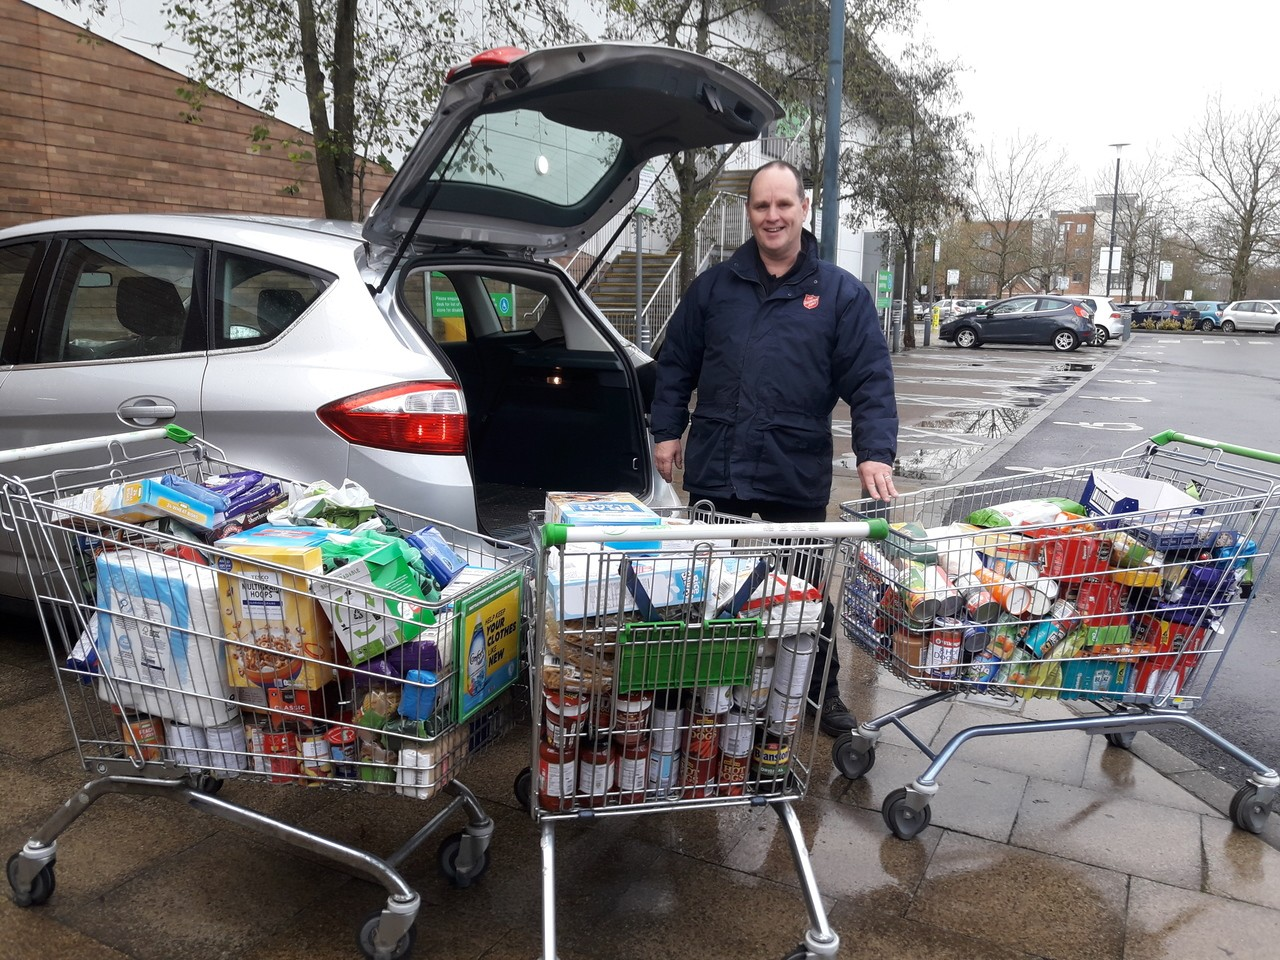 Salvation Army Fight Hunger donation | Asda Kingshill